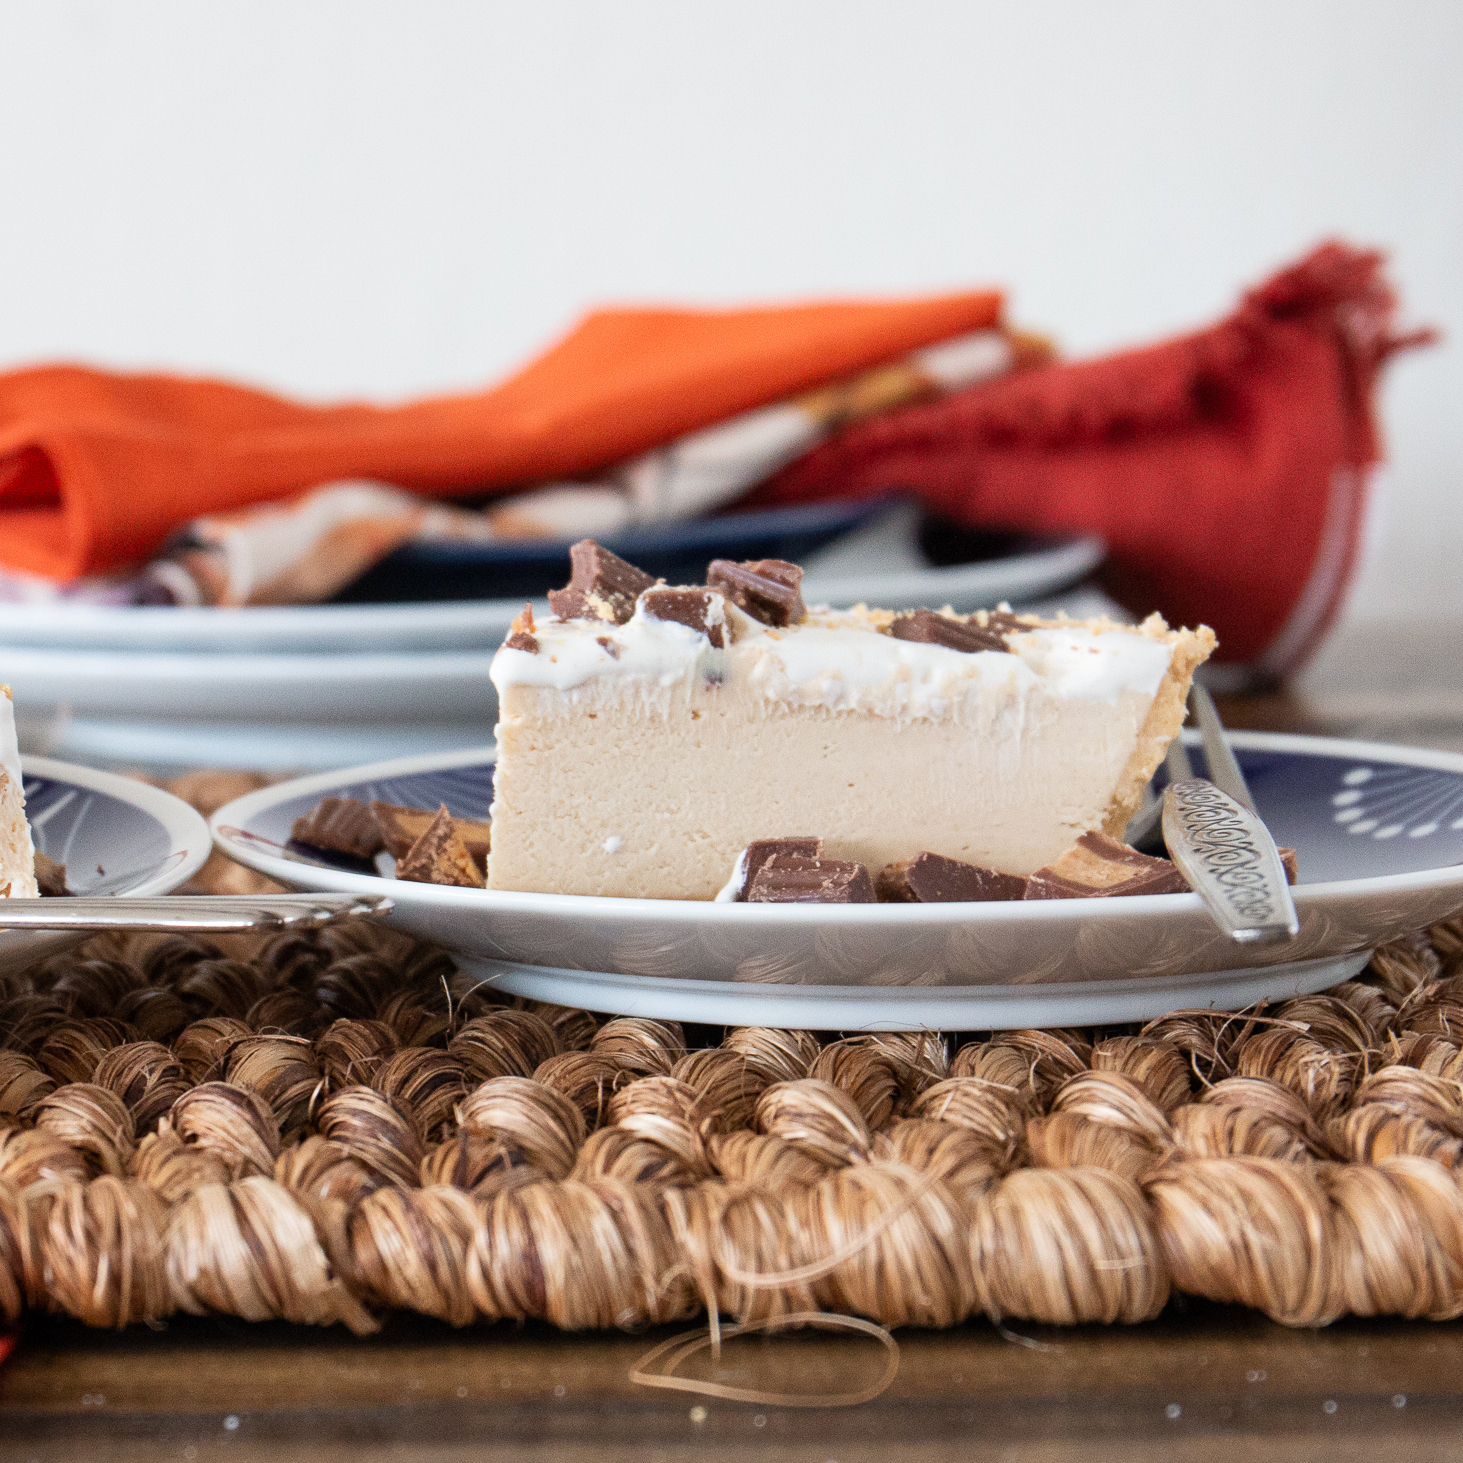 Kentucky, we were counting on you for a bourbon pecan pie, but we also applaud the second appearance of peanut butter pie on this list. Perhaps with such a big border with Indiana, it shouldn't be surprising the Bluegrass State likes this decadent dessert, too.